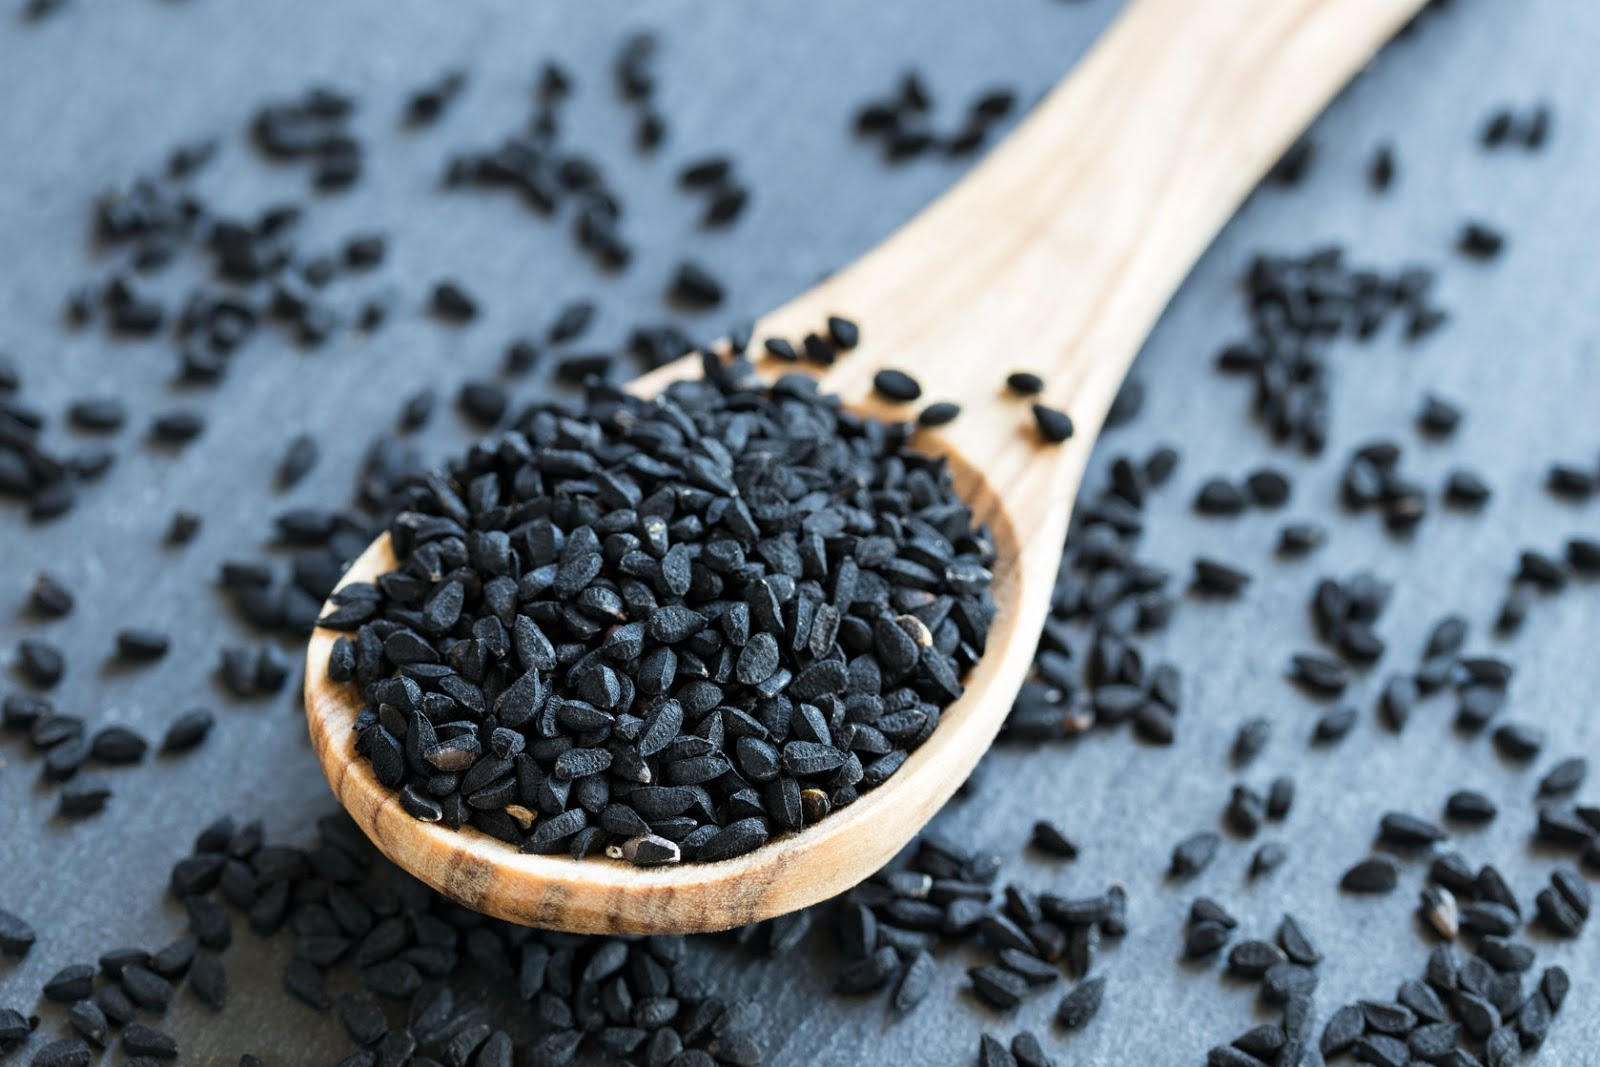 BUY EGYPTIAN BLACK SEEDS